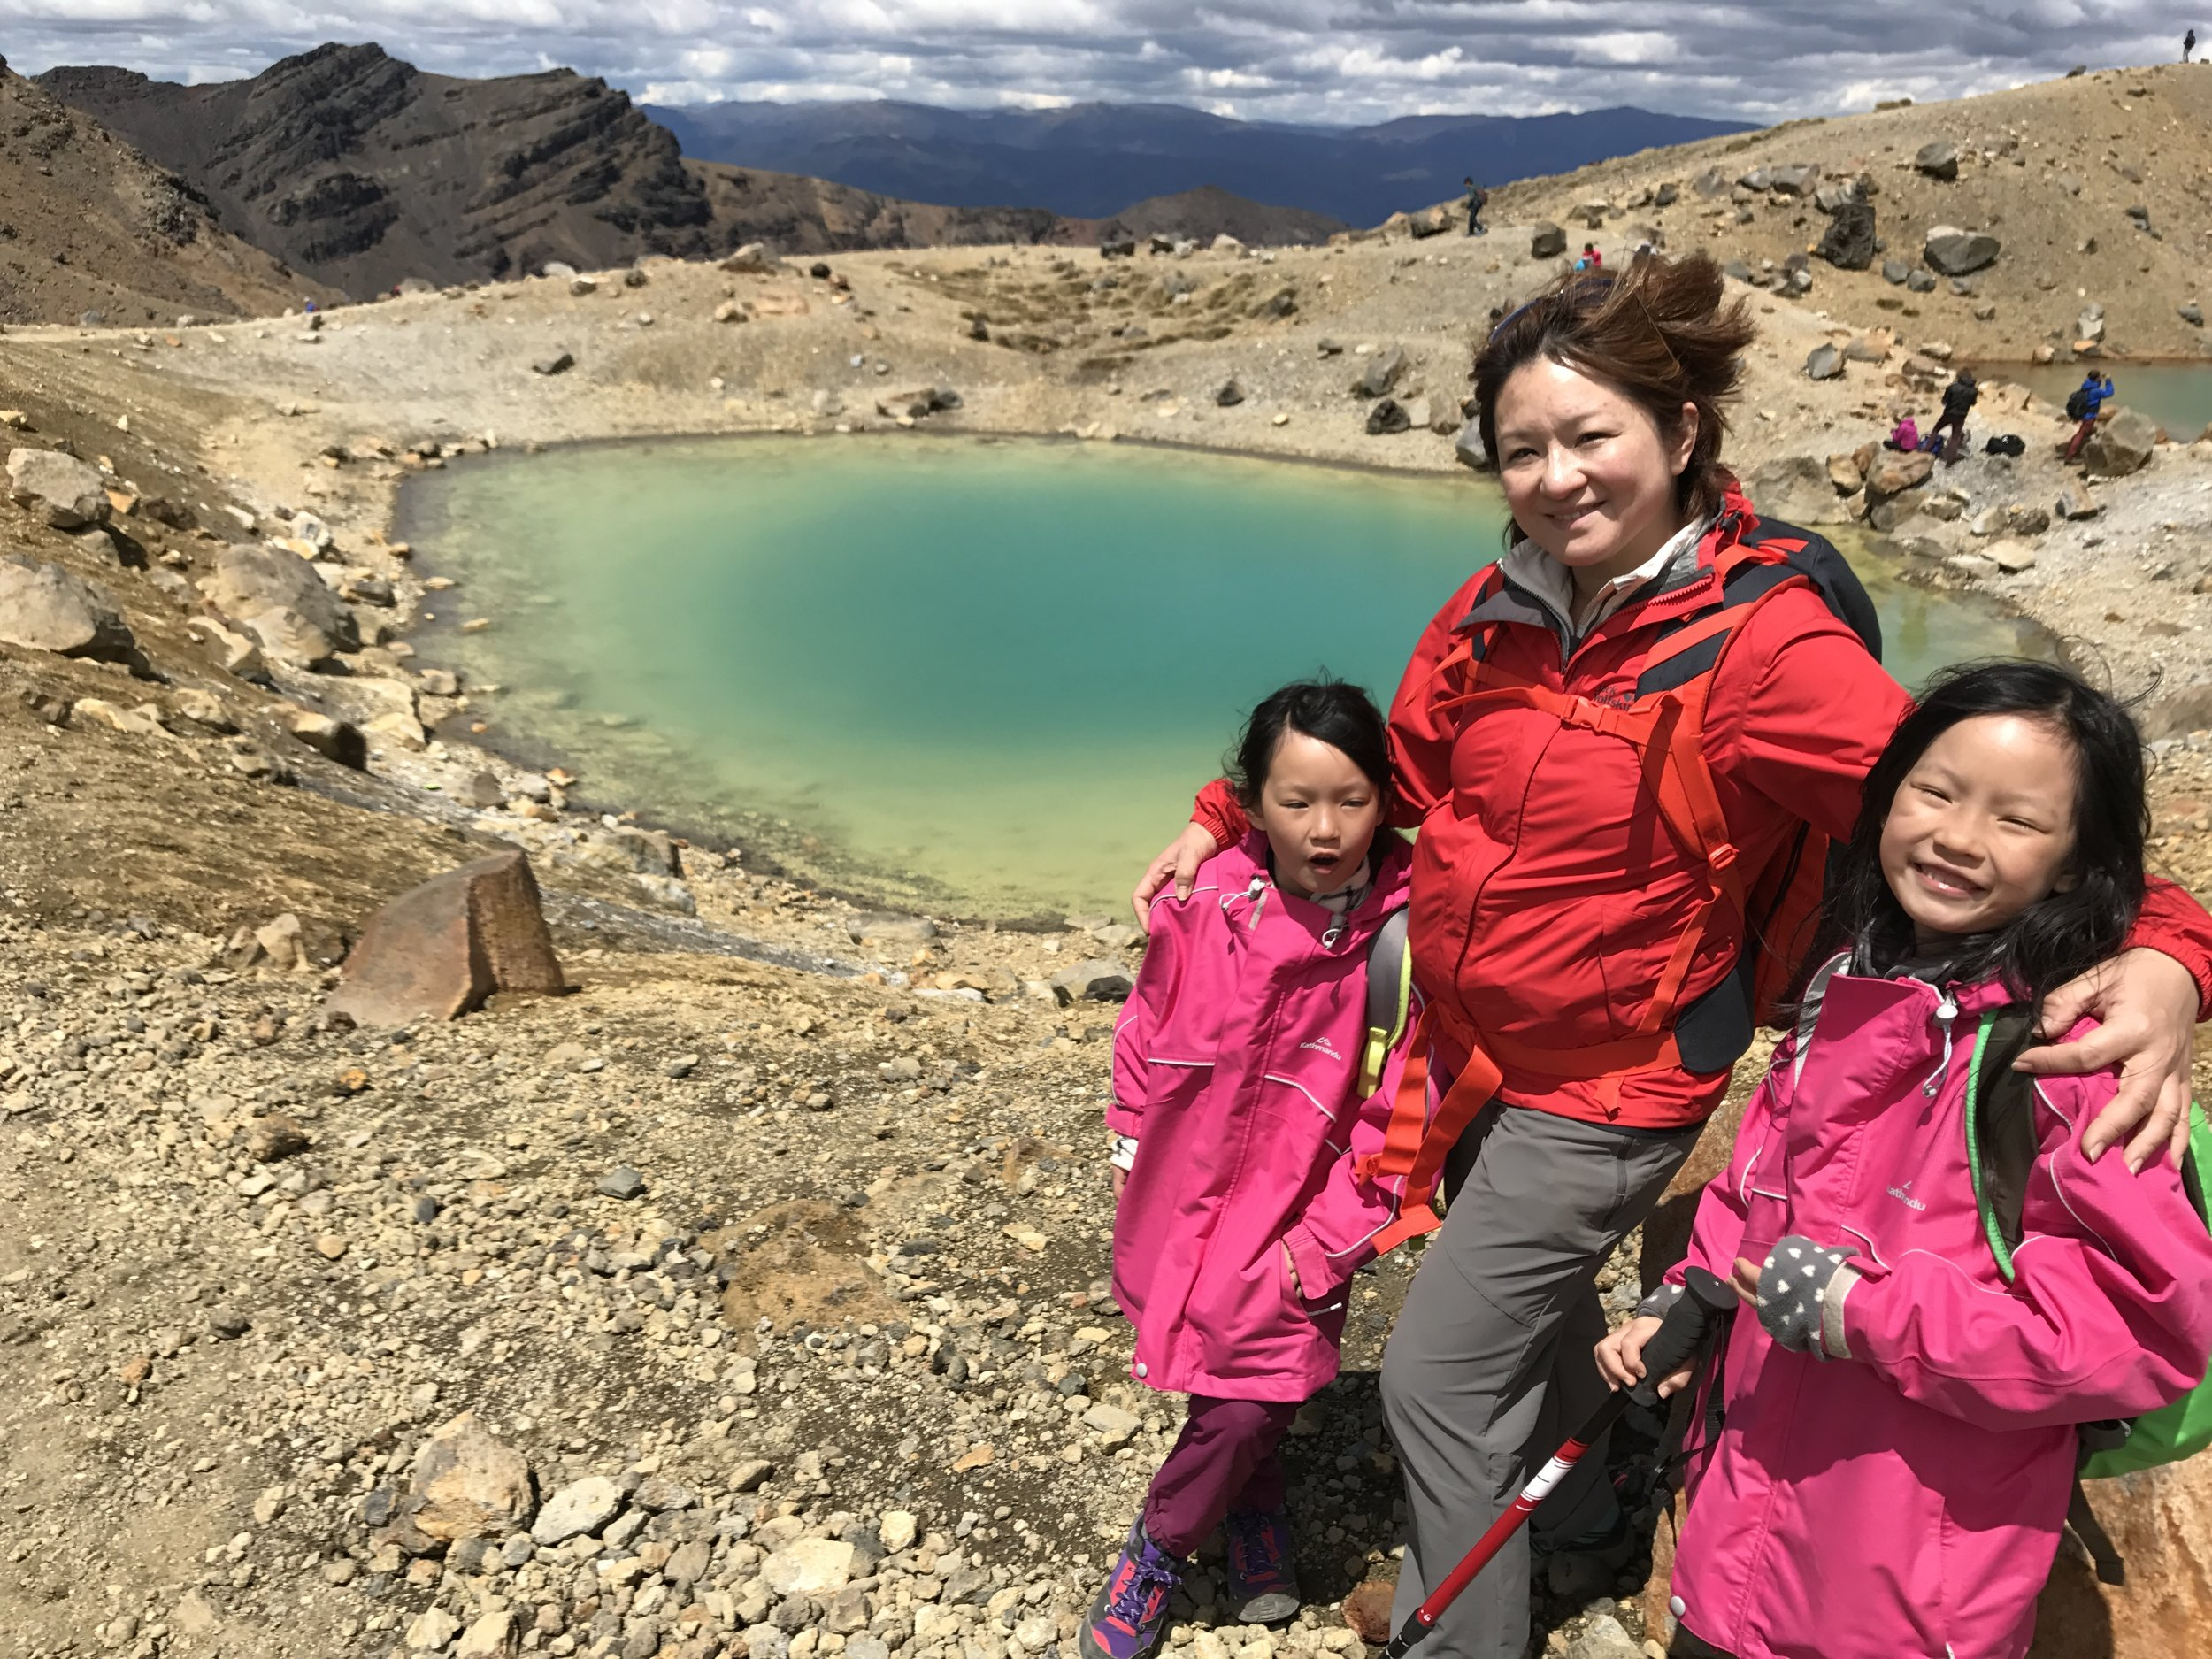 The gals at Emerald Lakes - a welcome sight and respite after the descent from Red Crater.